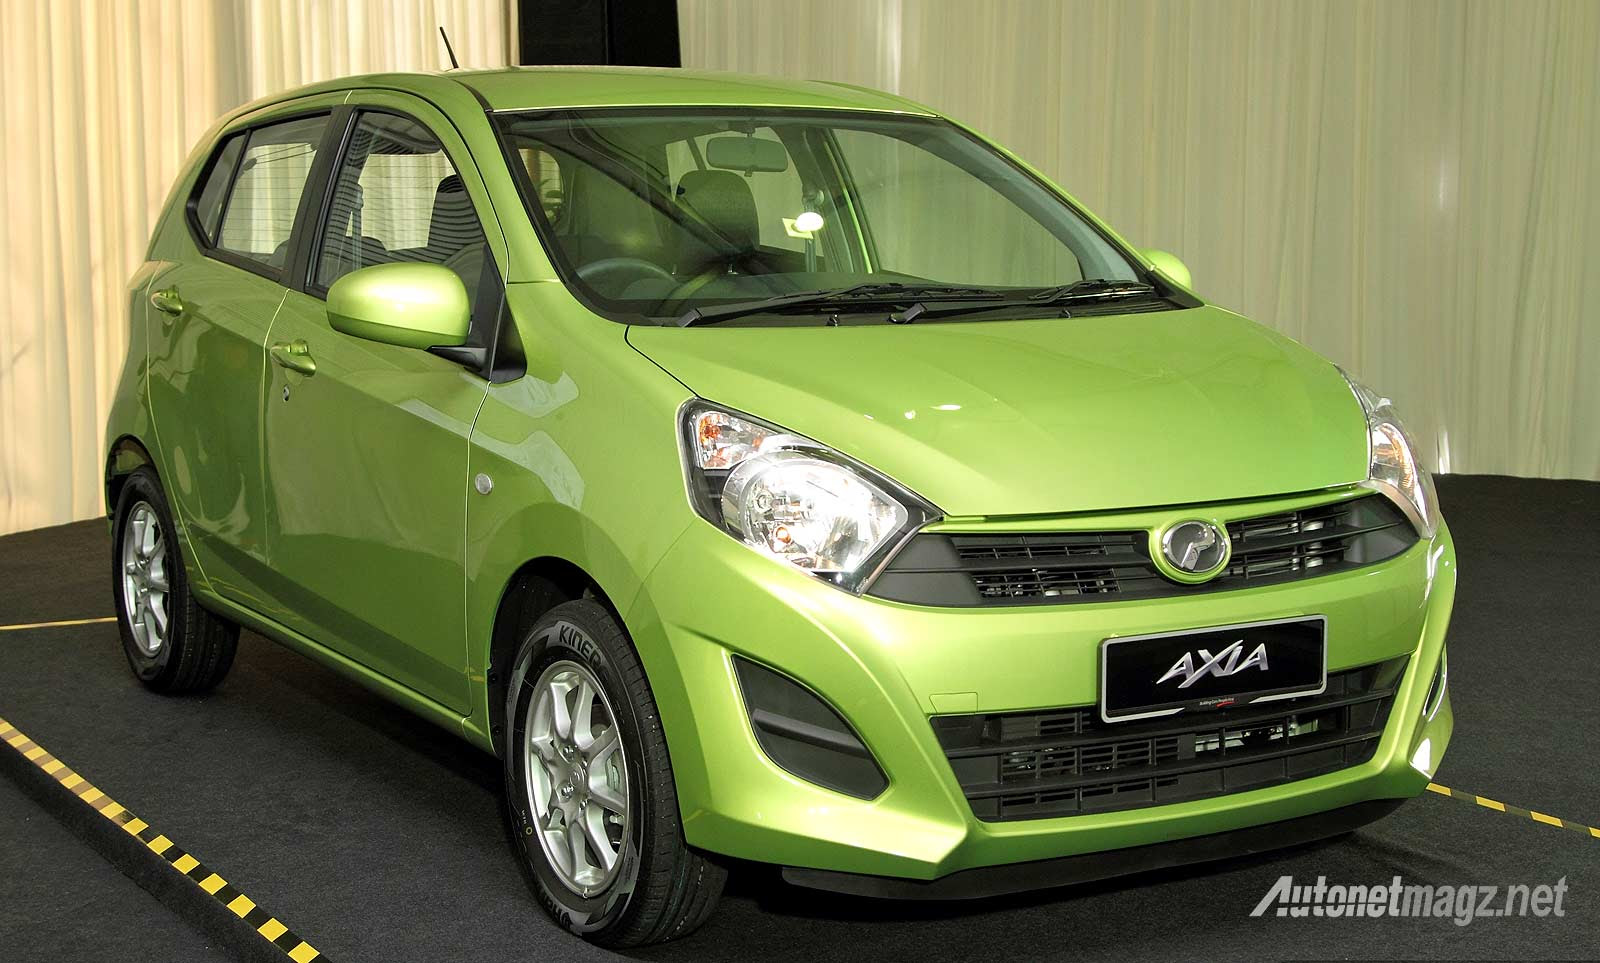 First Impression Review Perodua Axia, Kembaran Agya-Ayla